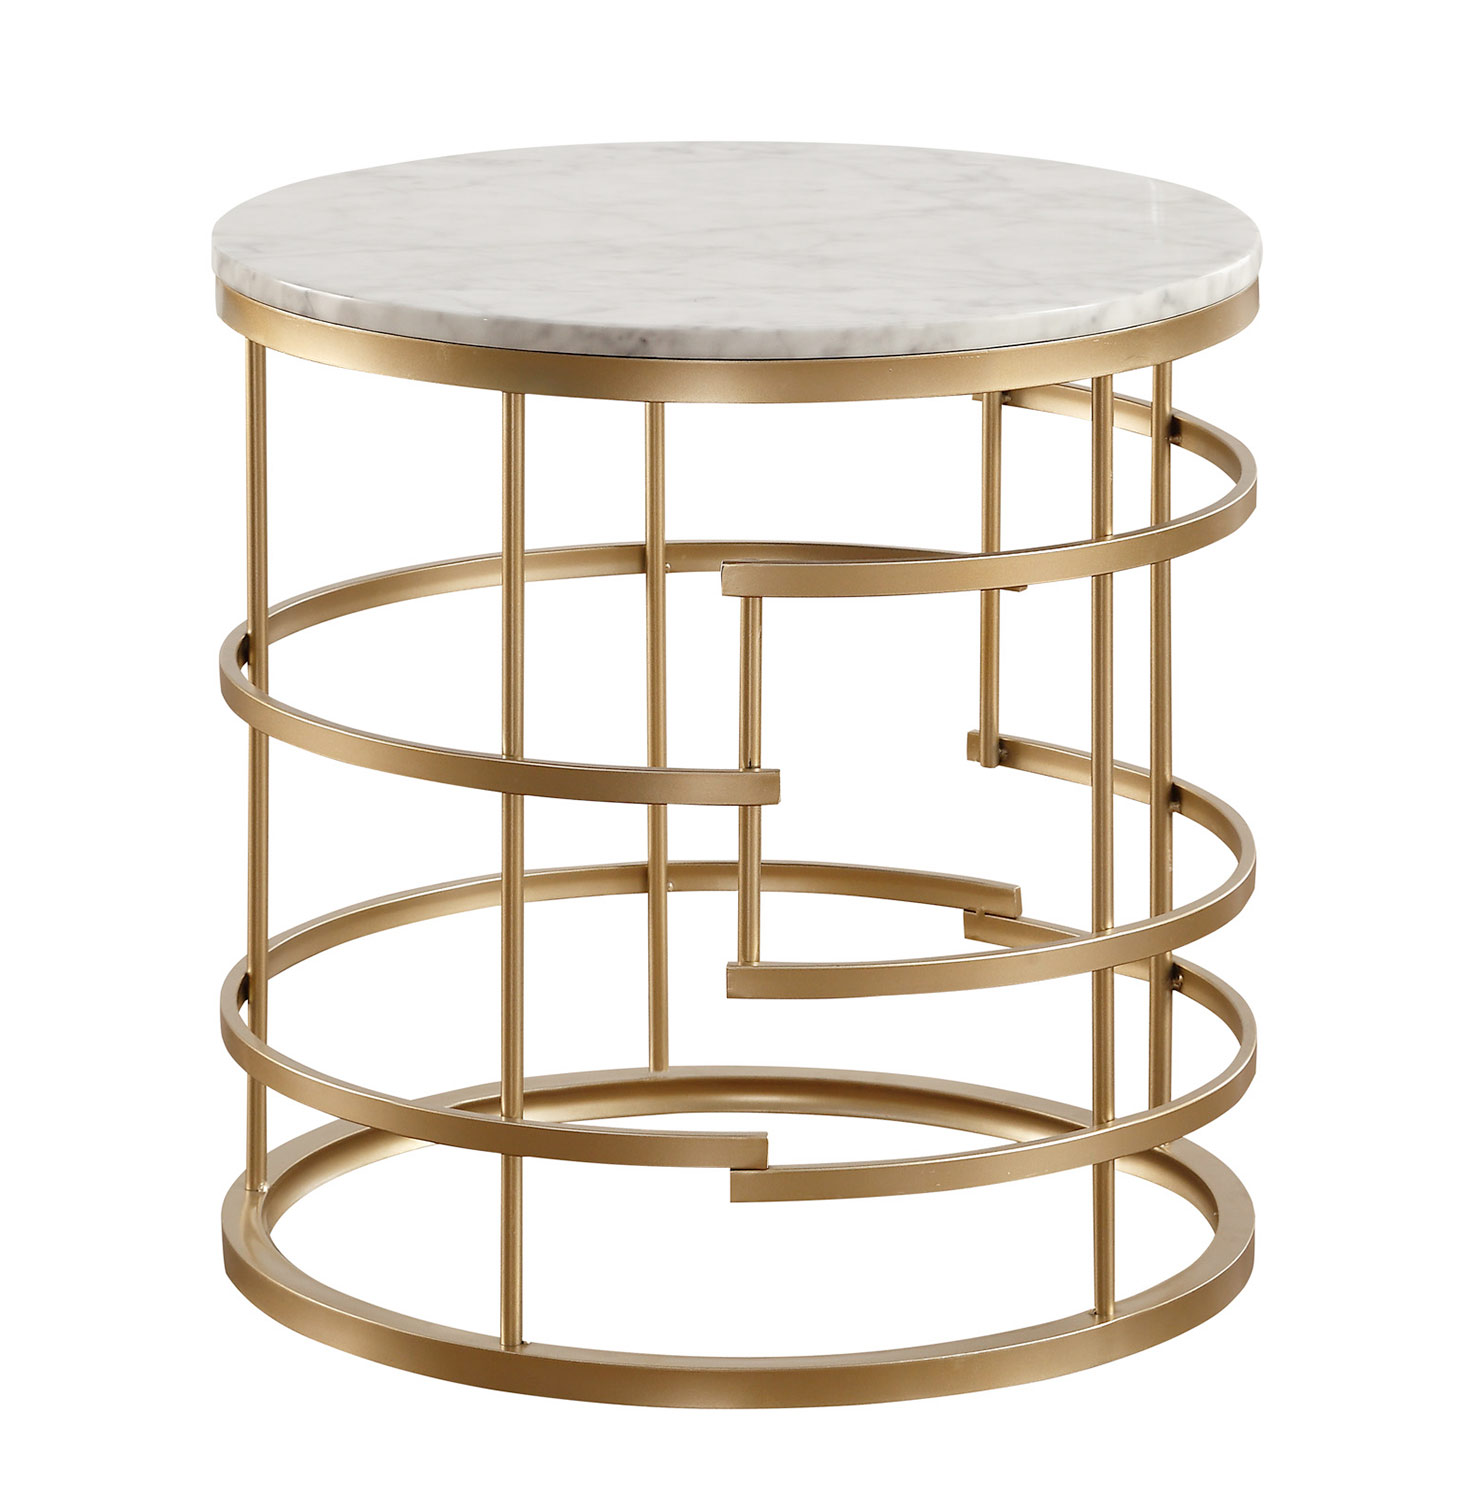 Homelegance Brassica Round End Table with Faux Marble Top - Gold - White Marble Top